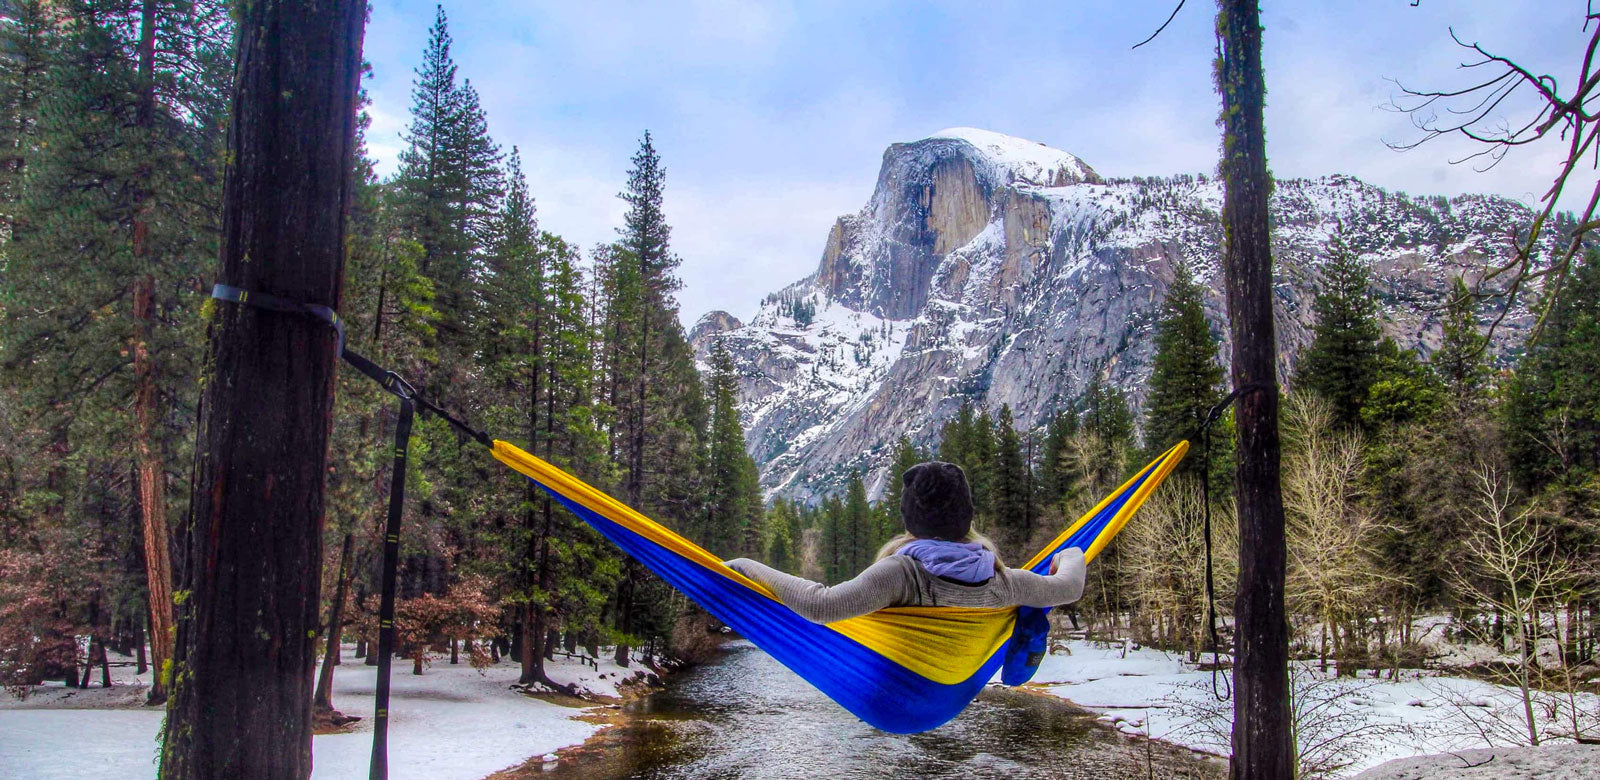 Tips for Hammock Hiking, Backpacking and Camping - Choosing the best Hammock